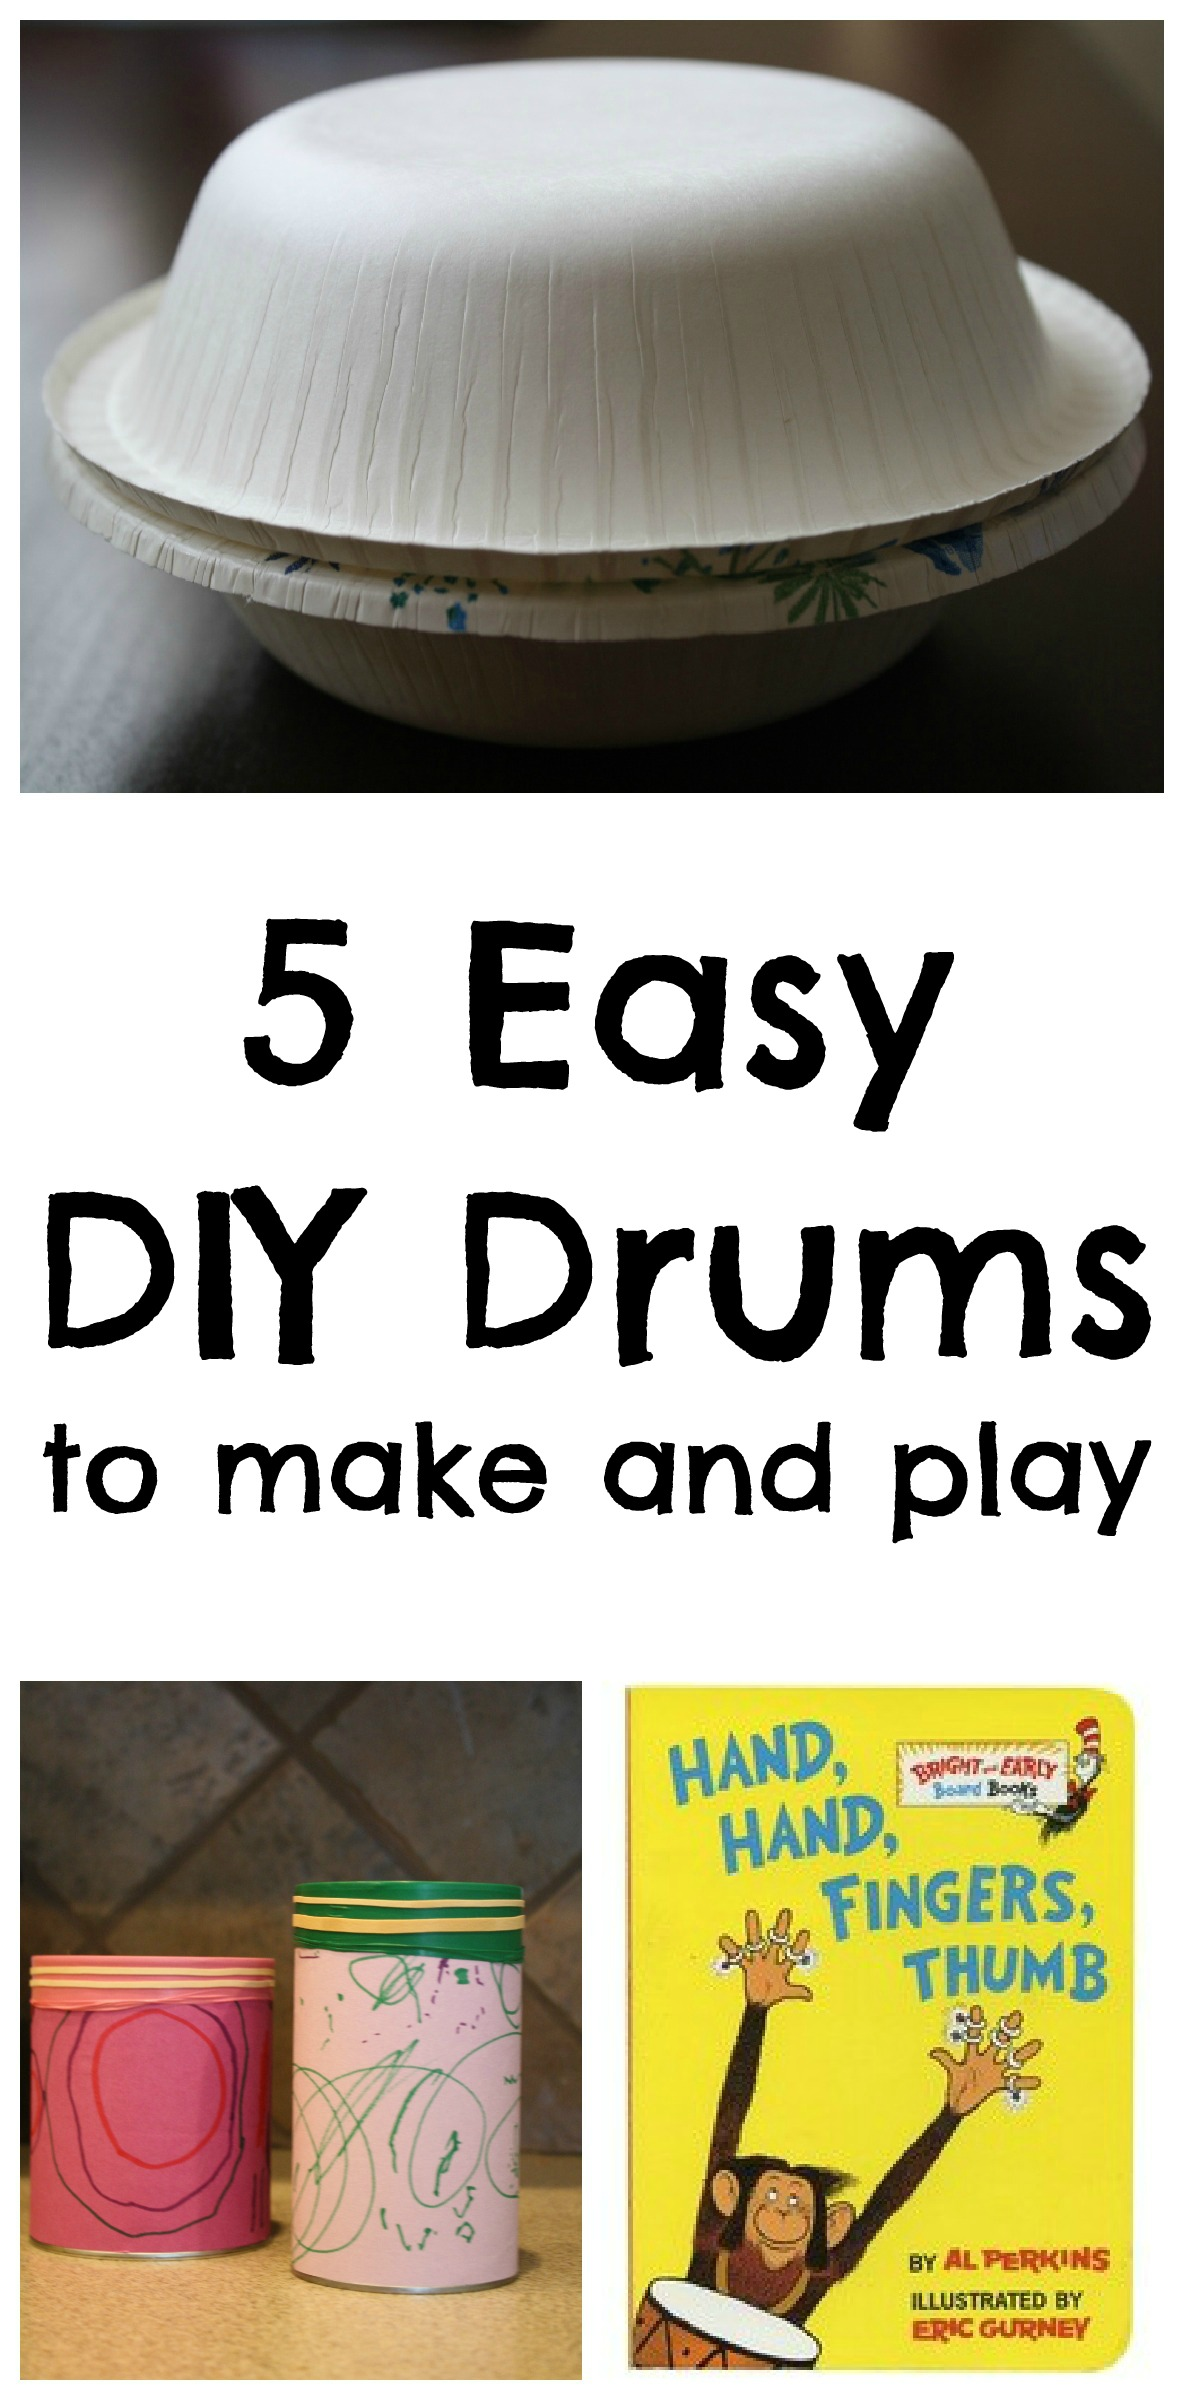 DIY Drums to Go With Hand, Hand, Fingers, Thumb